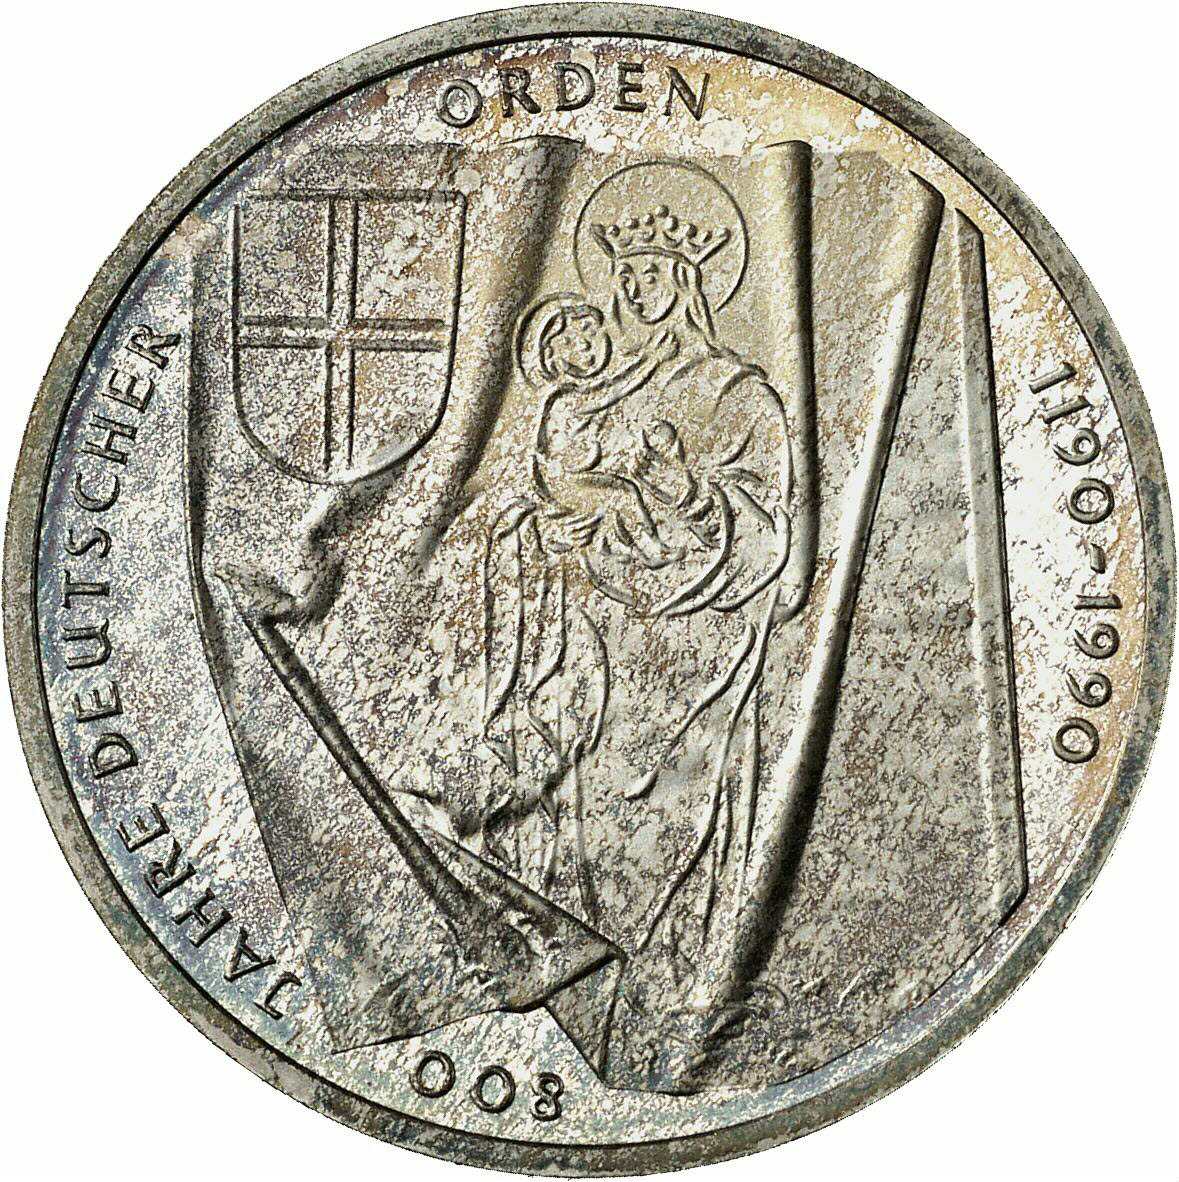 DE 10 Deutsche Mark 1990 J